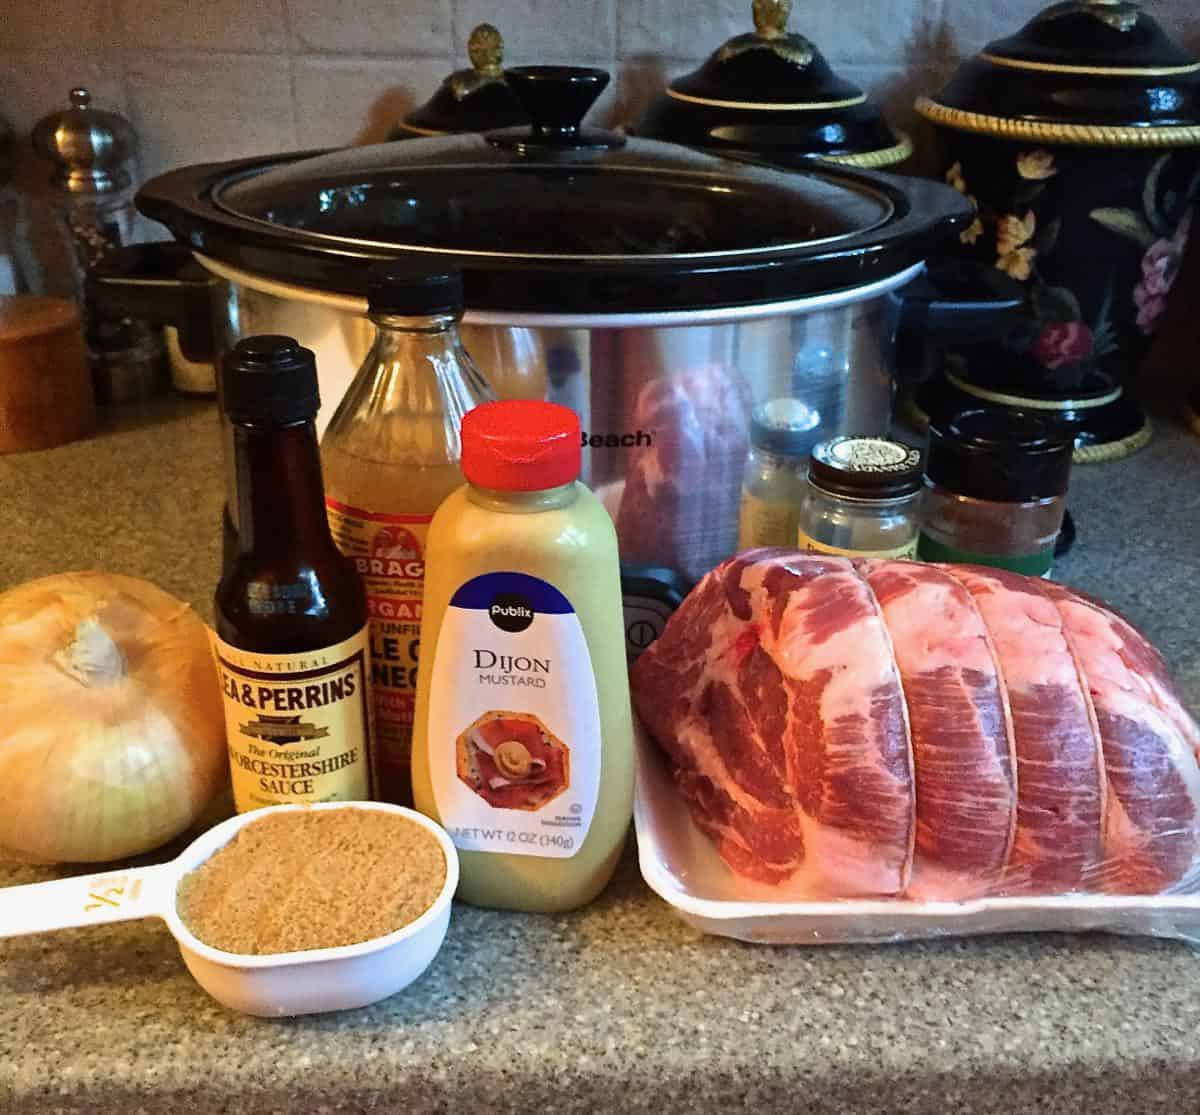 A crock-pot, boston butt roast, brown sugar and other ingredients.